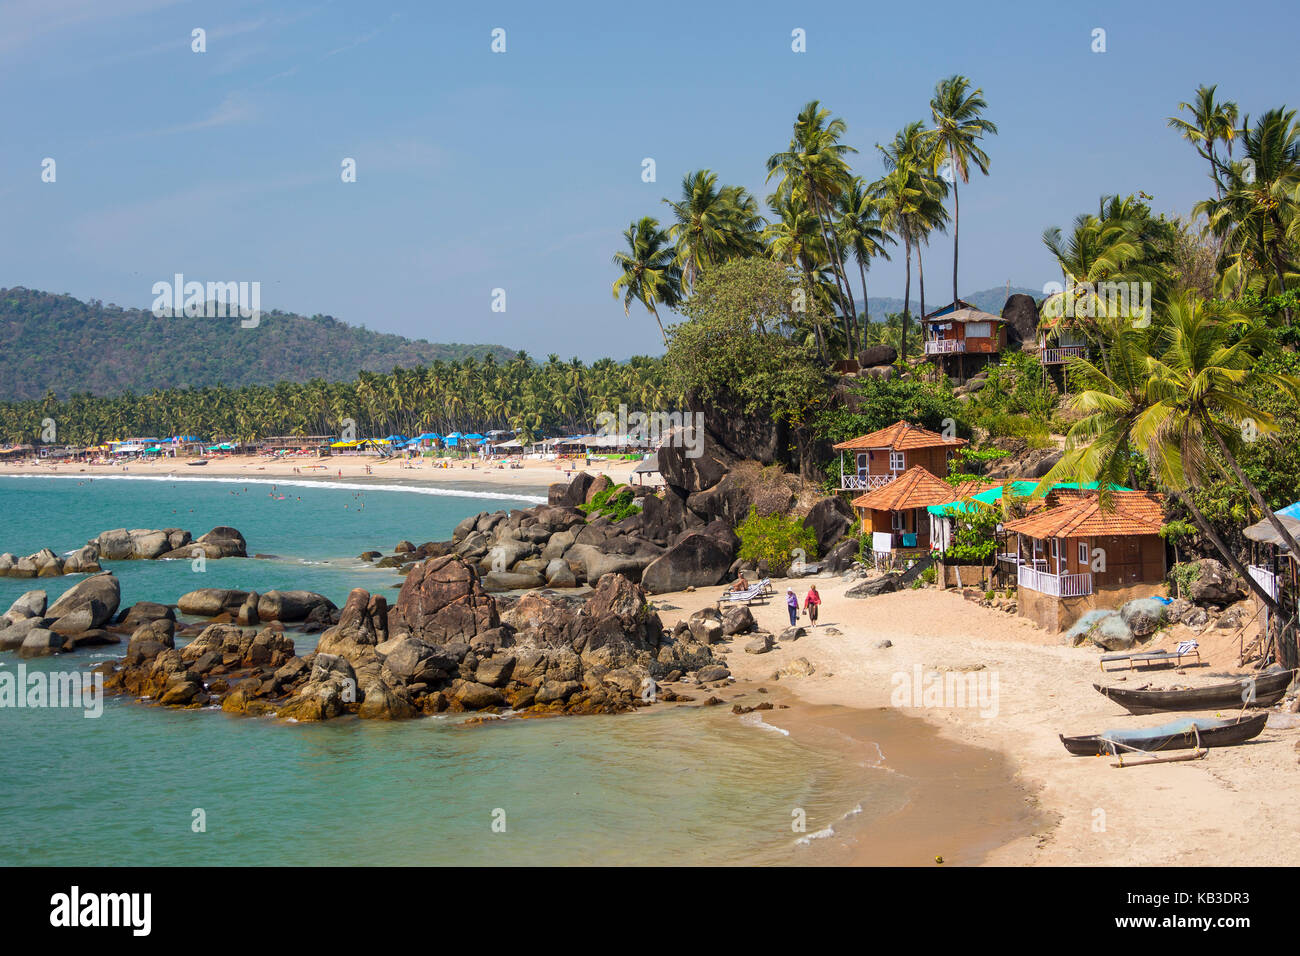 India goa beach of palolem palms and bungalows overview